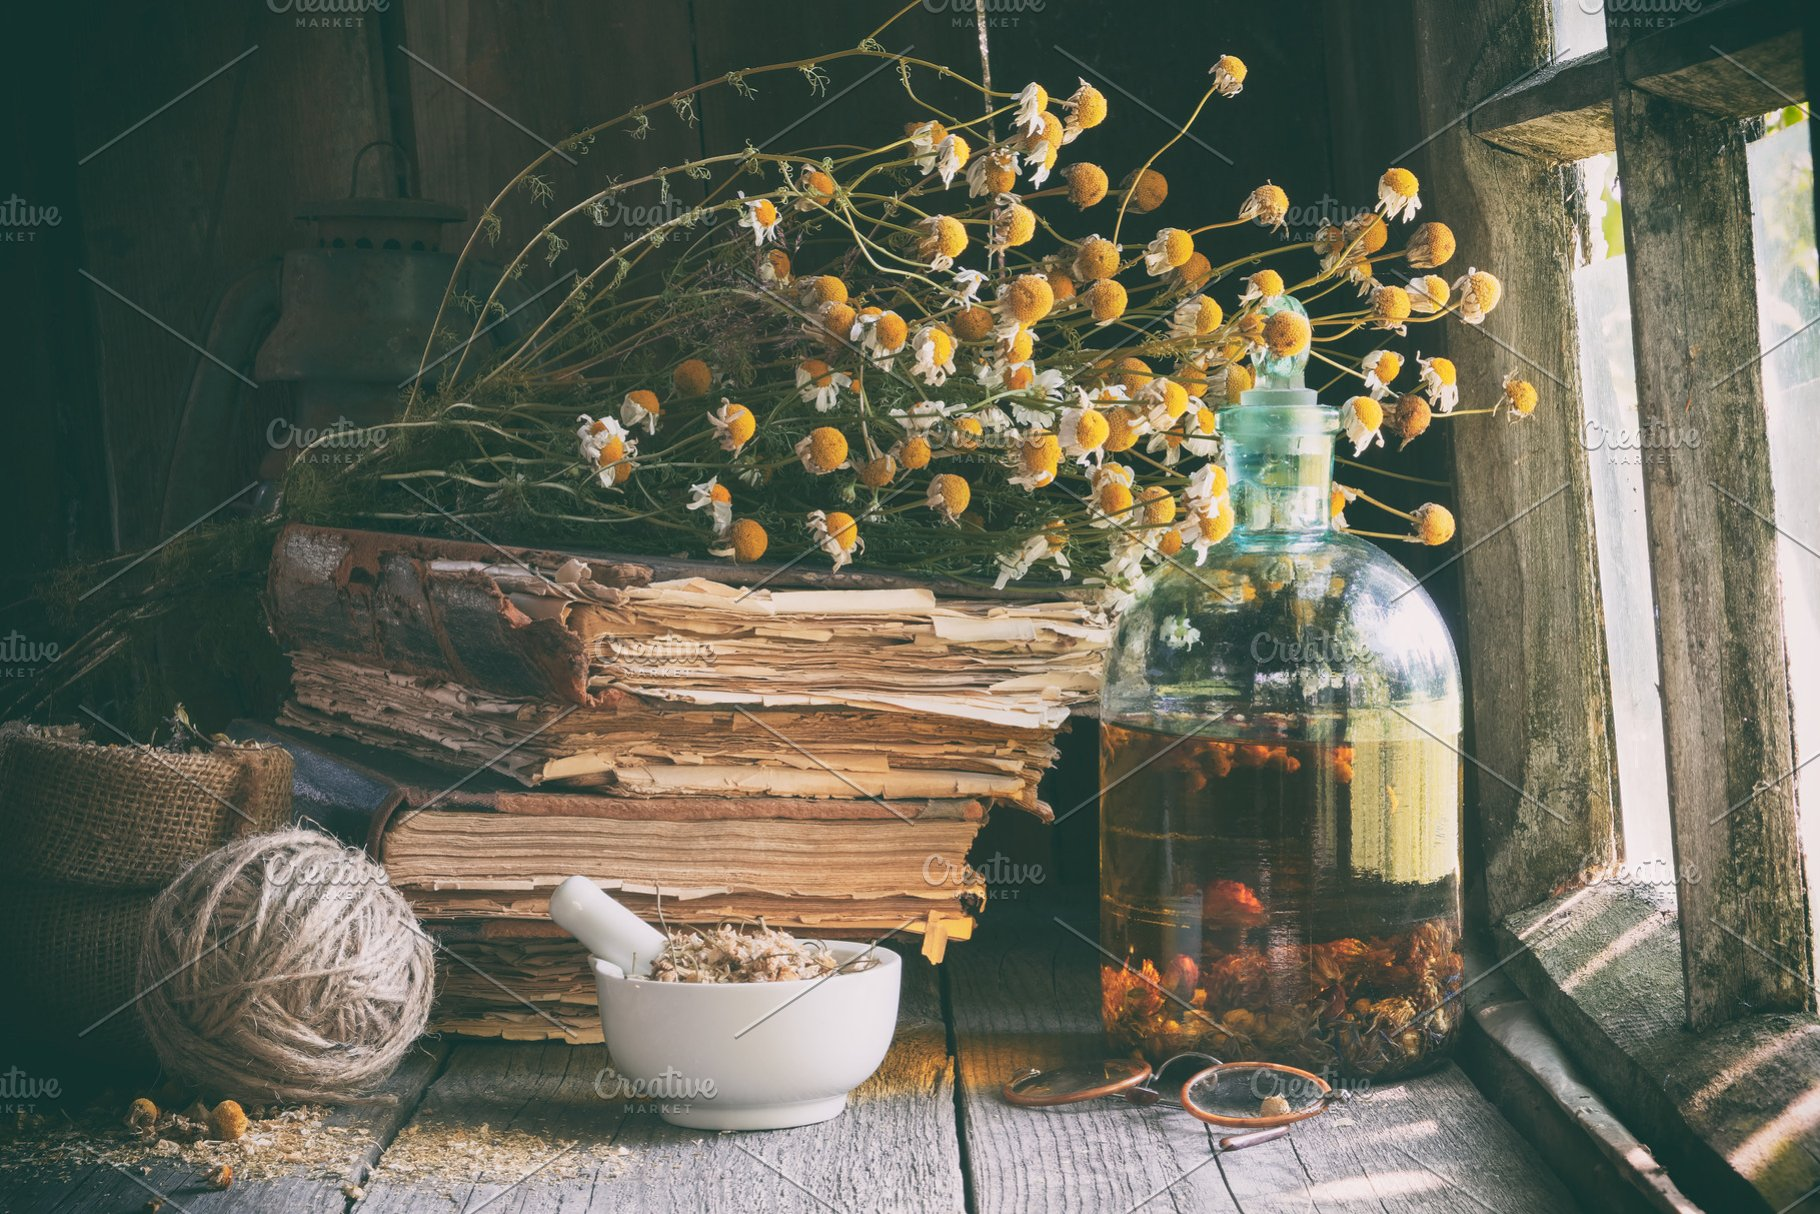 Mortar of herbs, infusion, old books